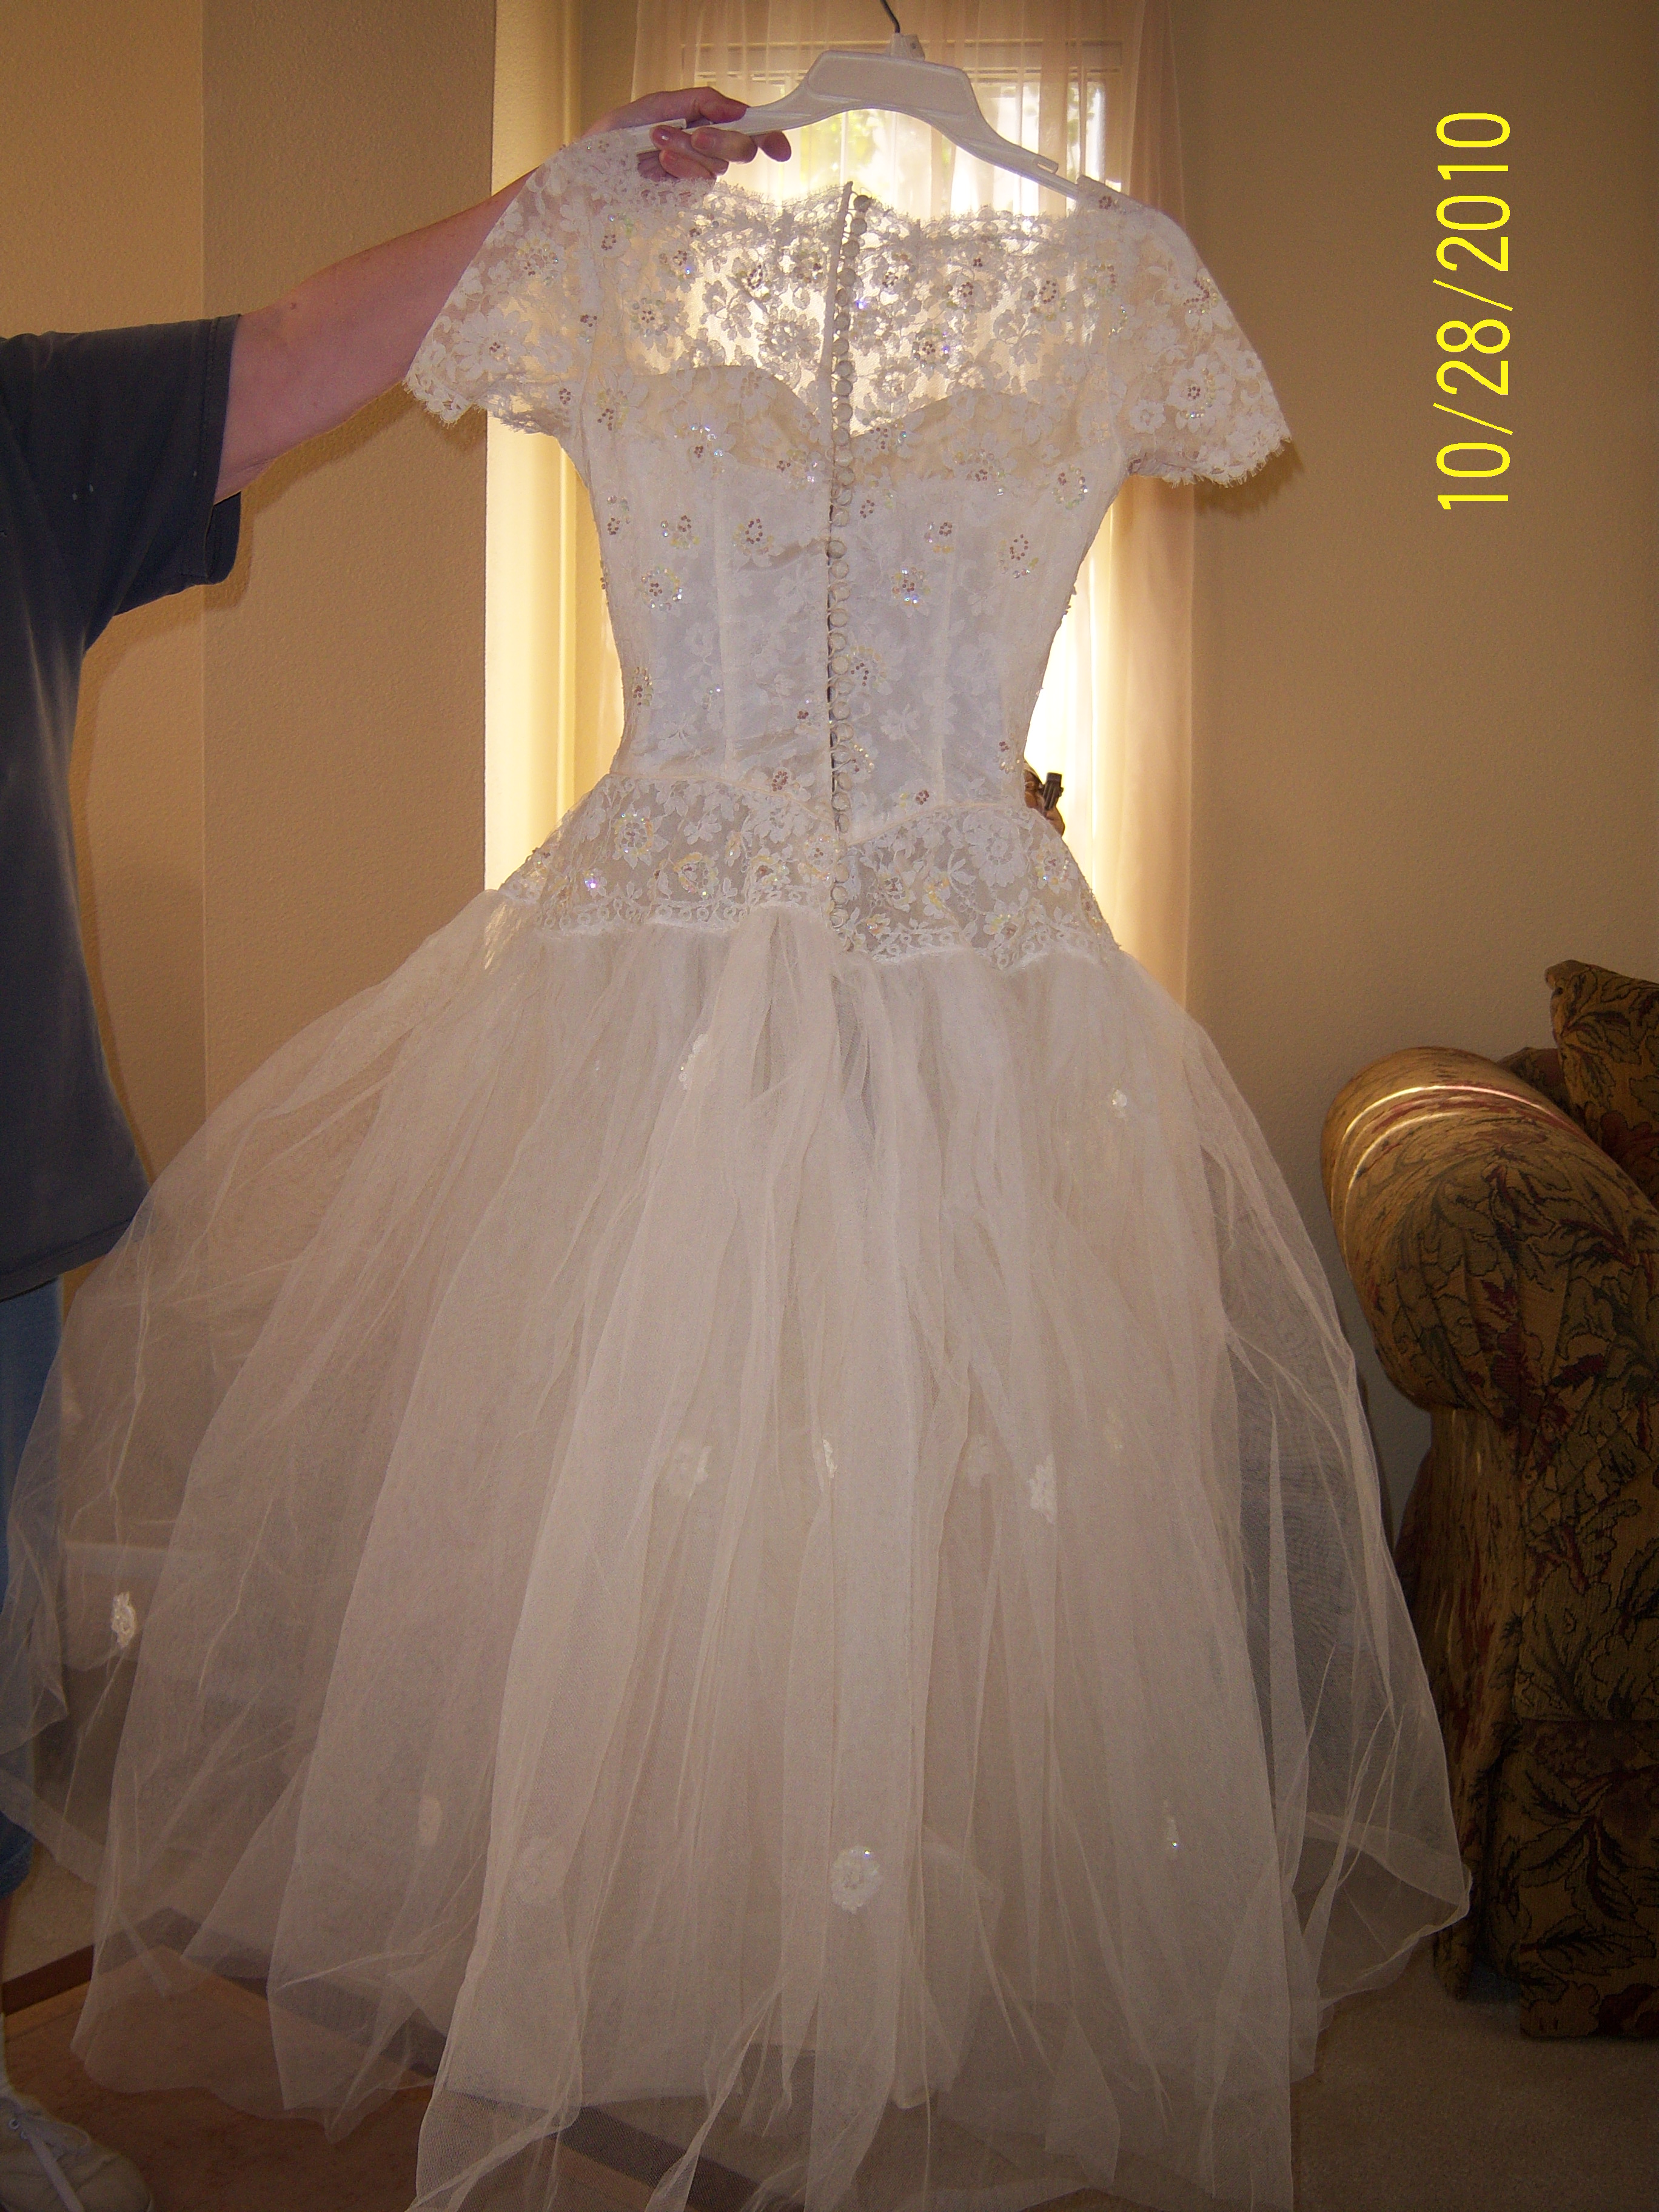 1957 Ivory Tulle and Lace Ballerina Style Wedding Dress